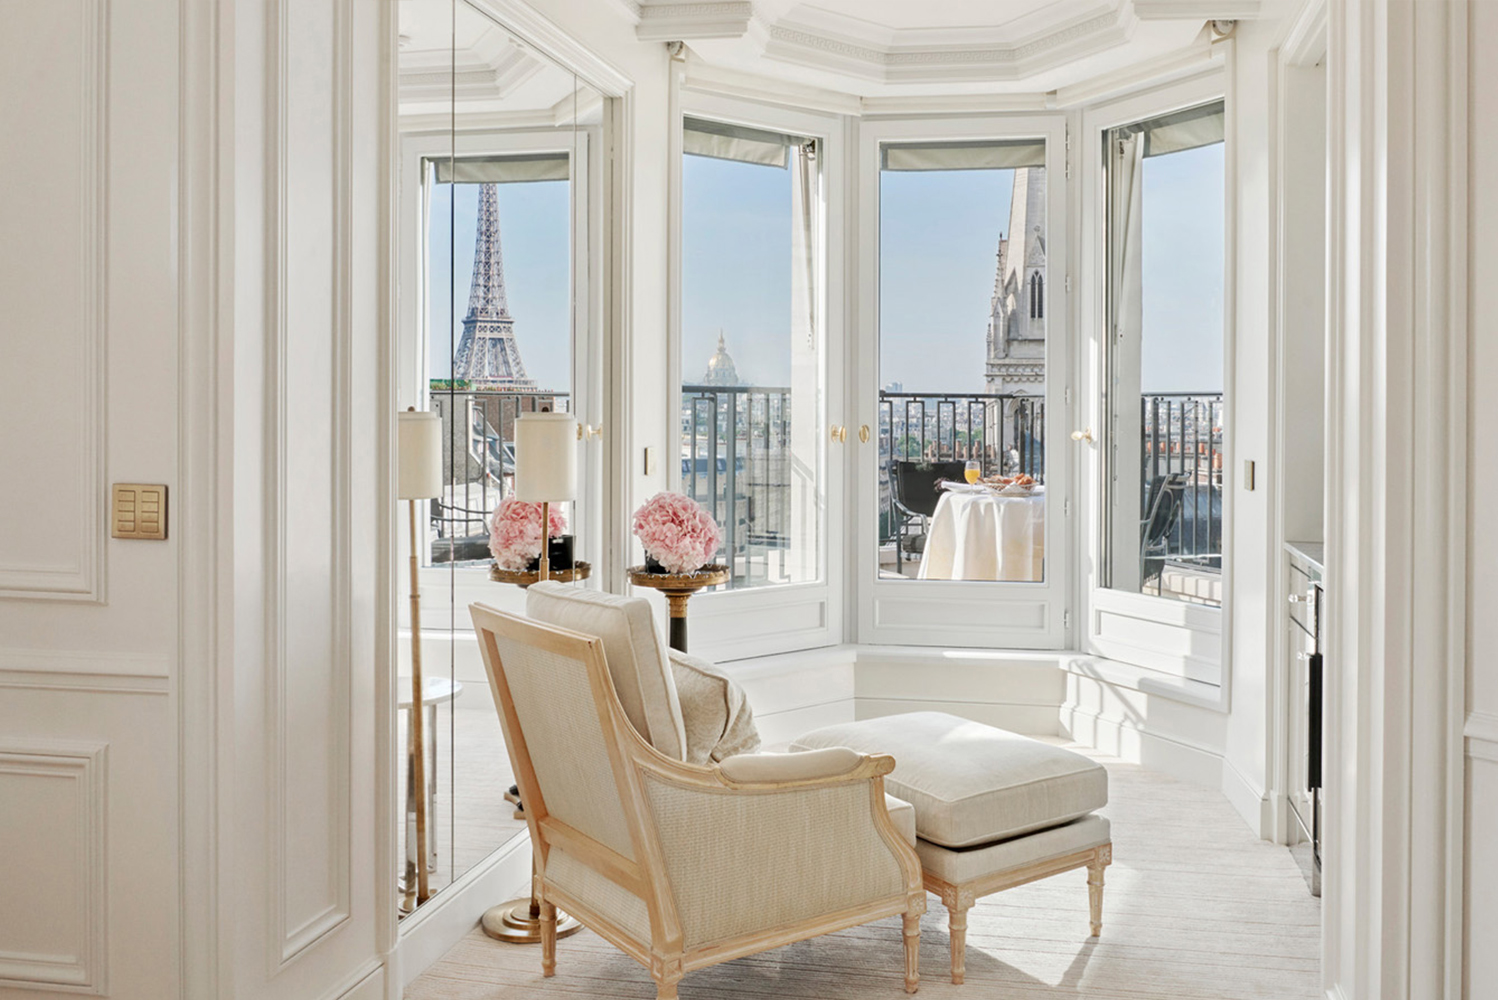 Four Seasons Hotel George V, Paris launched the Eiffel Tower Suite and the Parisian Suite.